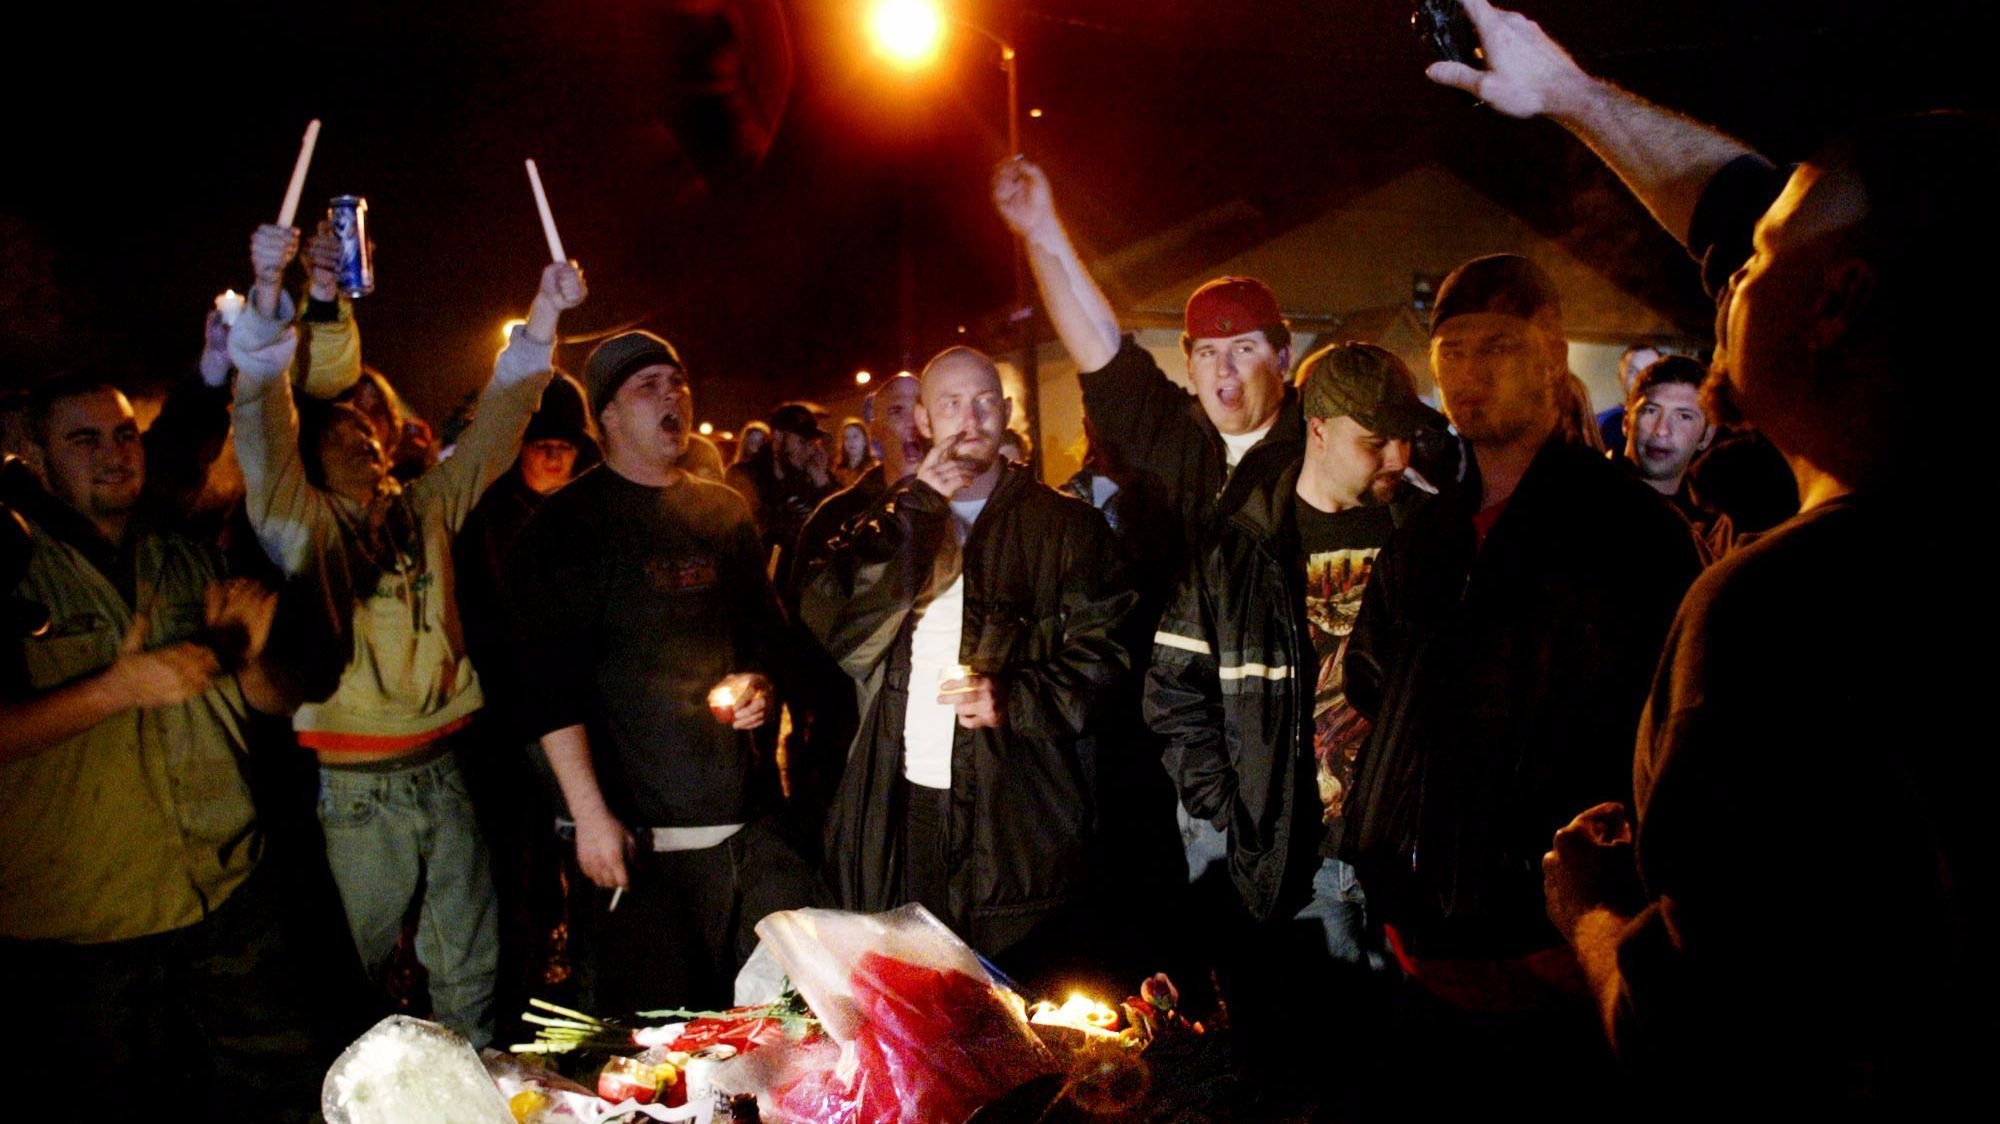 """Fans of """"Dimebag"""" Darrell Abbott sing during a candlelight vigil outside the Alrosa Villa club in Columbus, Ohio, on Dec. 9, 2004."""